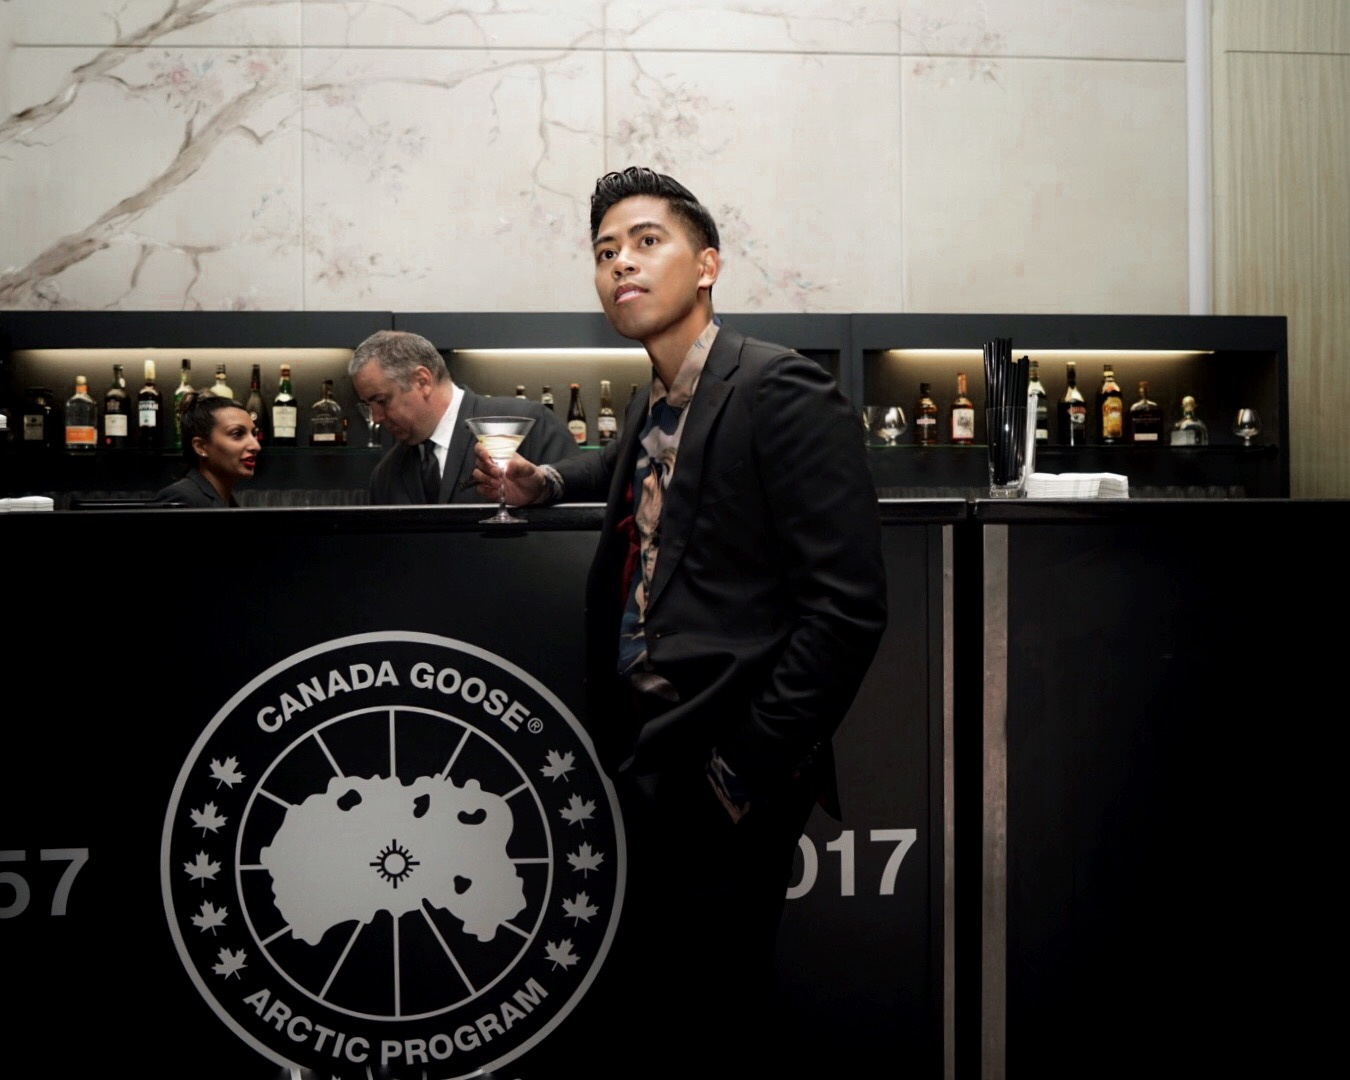 canada goose 60 year anniversary party four seasons toronto